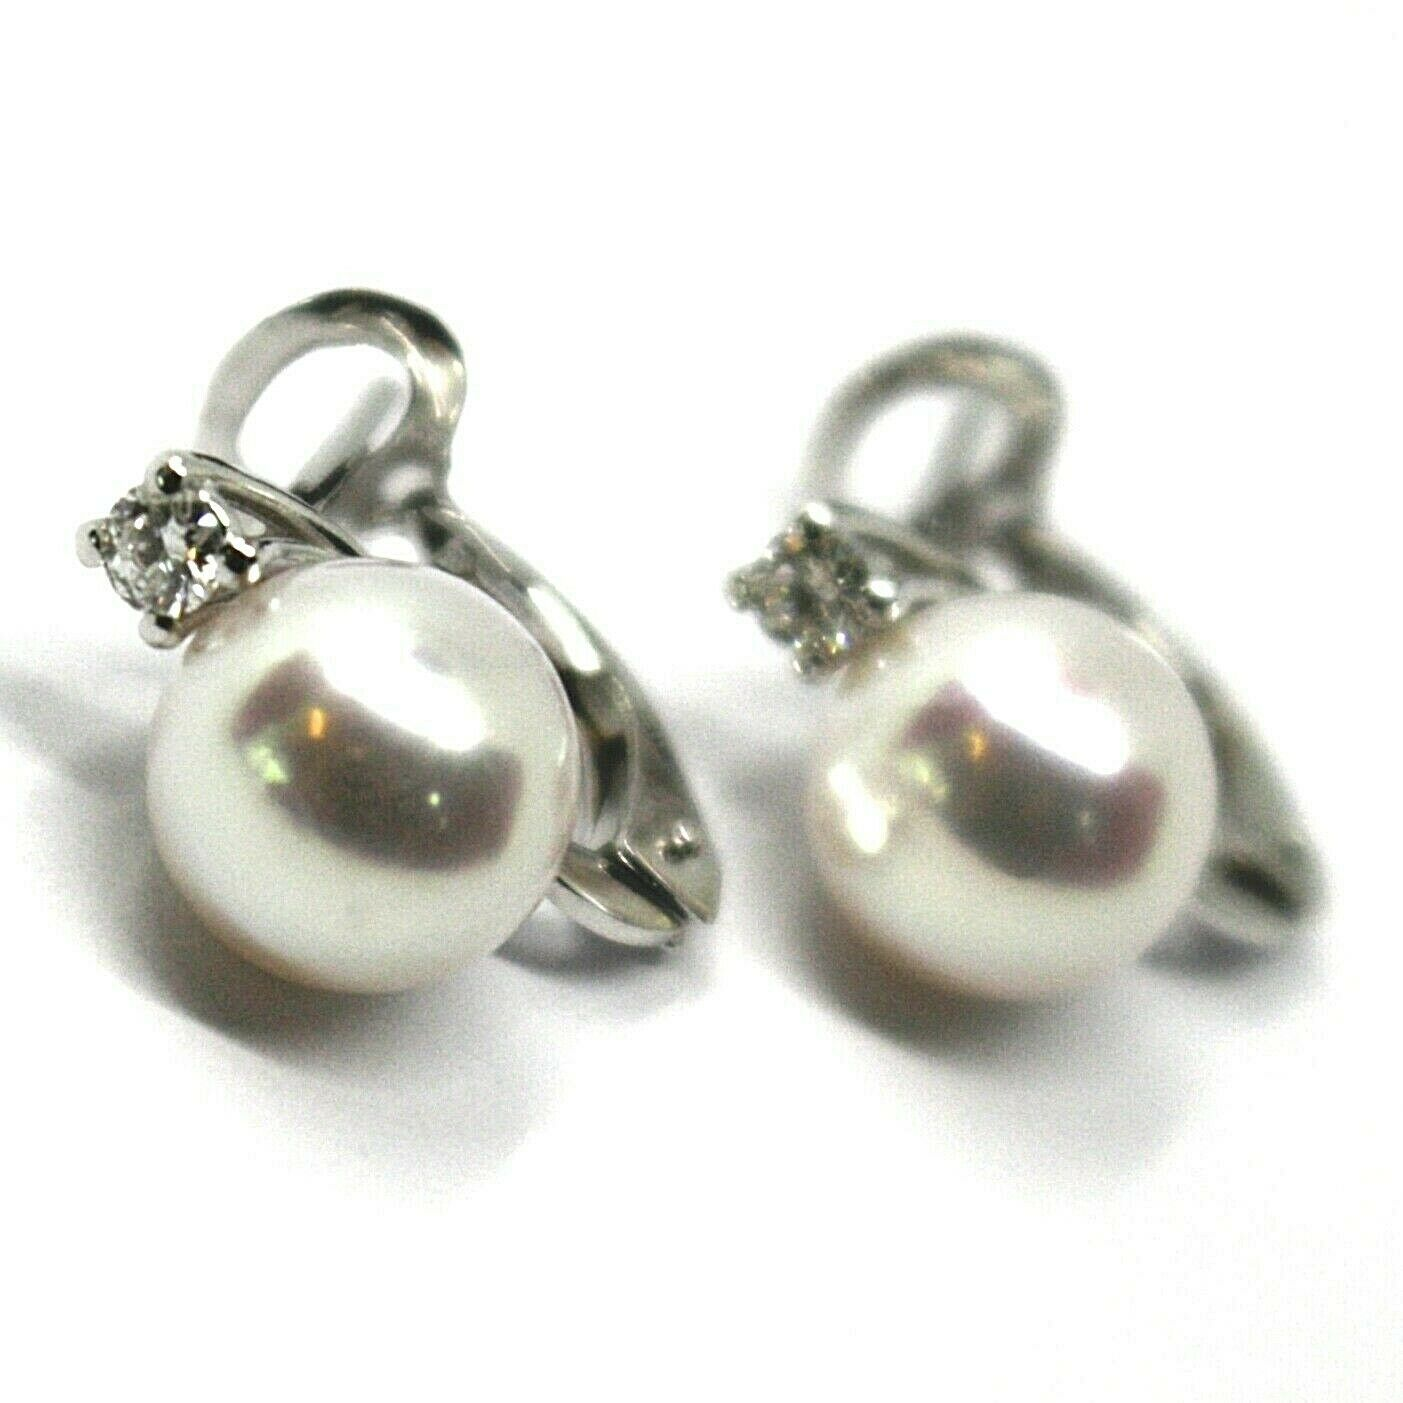 SOLID 18K WHITE GOLD CLIPS EARRINGS, SALTWATER AKOYA PEARLS 8/8.5 MM, DIAMONDS